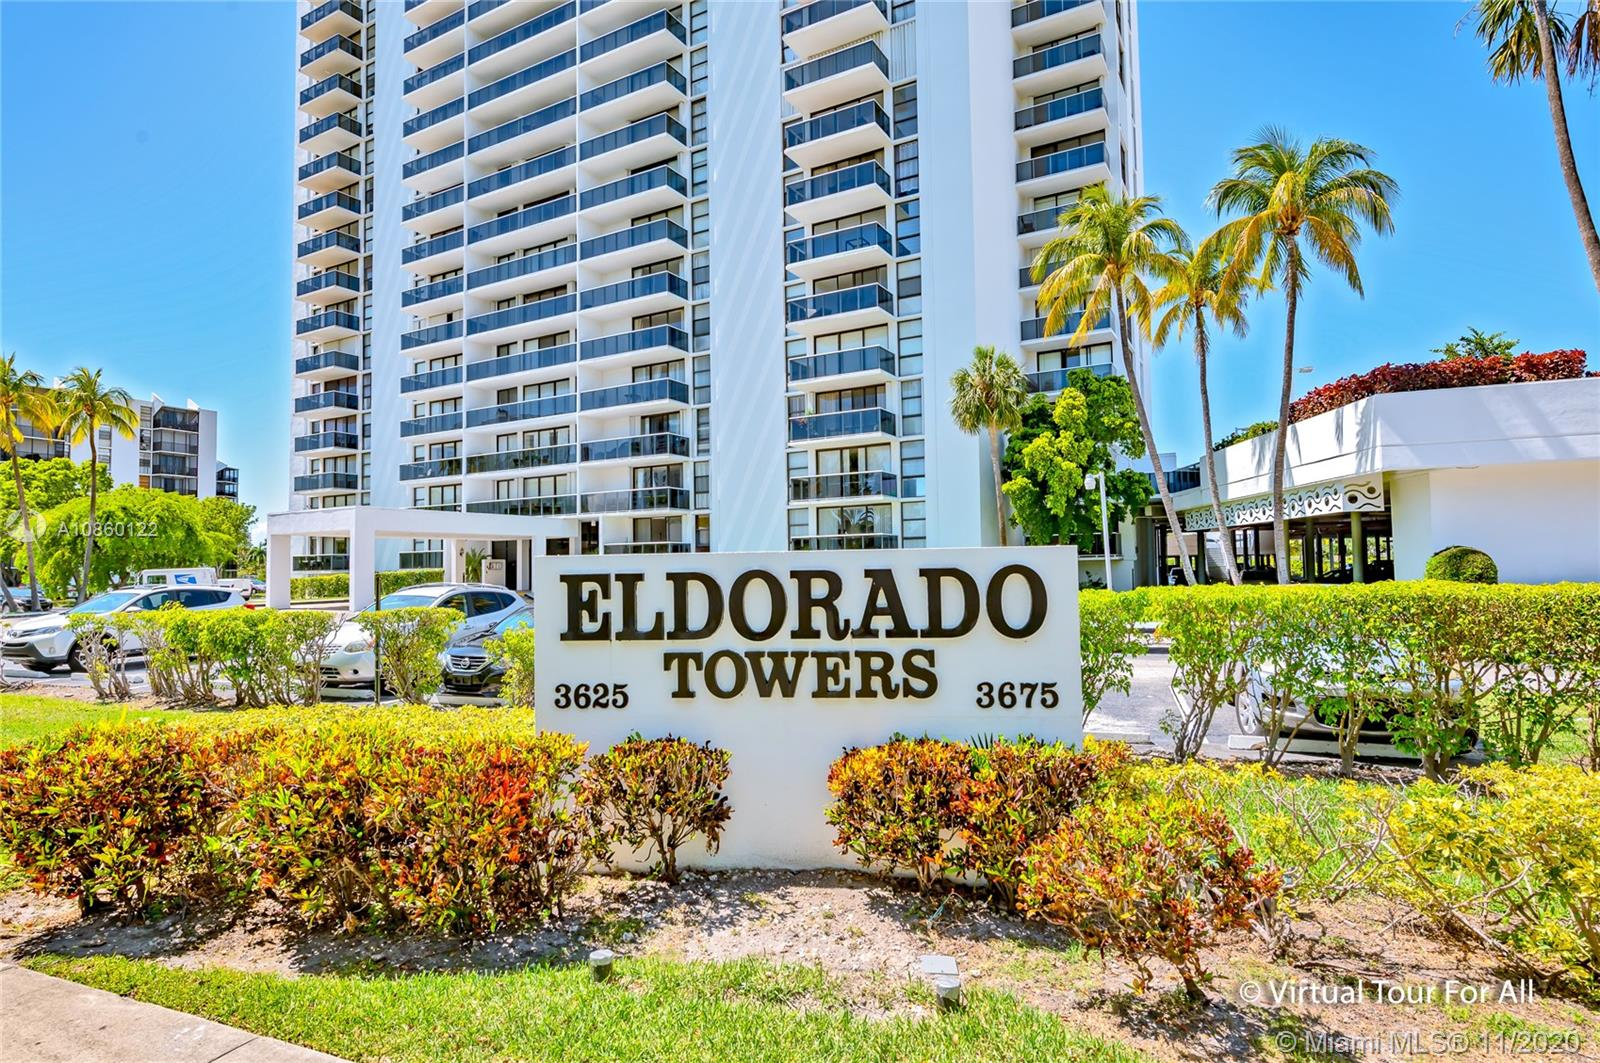 Eldorado Tower Two #1102 - 3675 N Country Club Dr #1102, Aventura, FL 33180